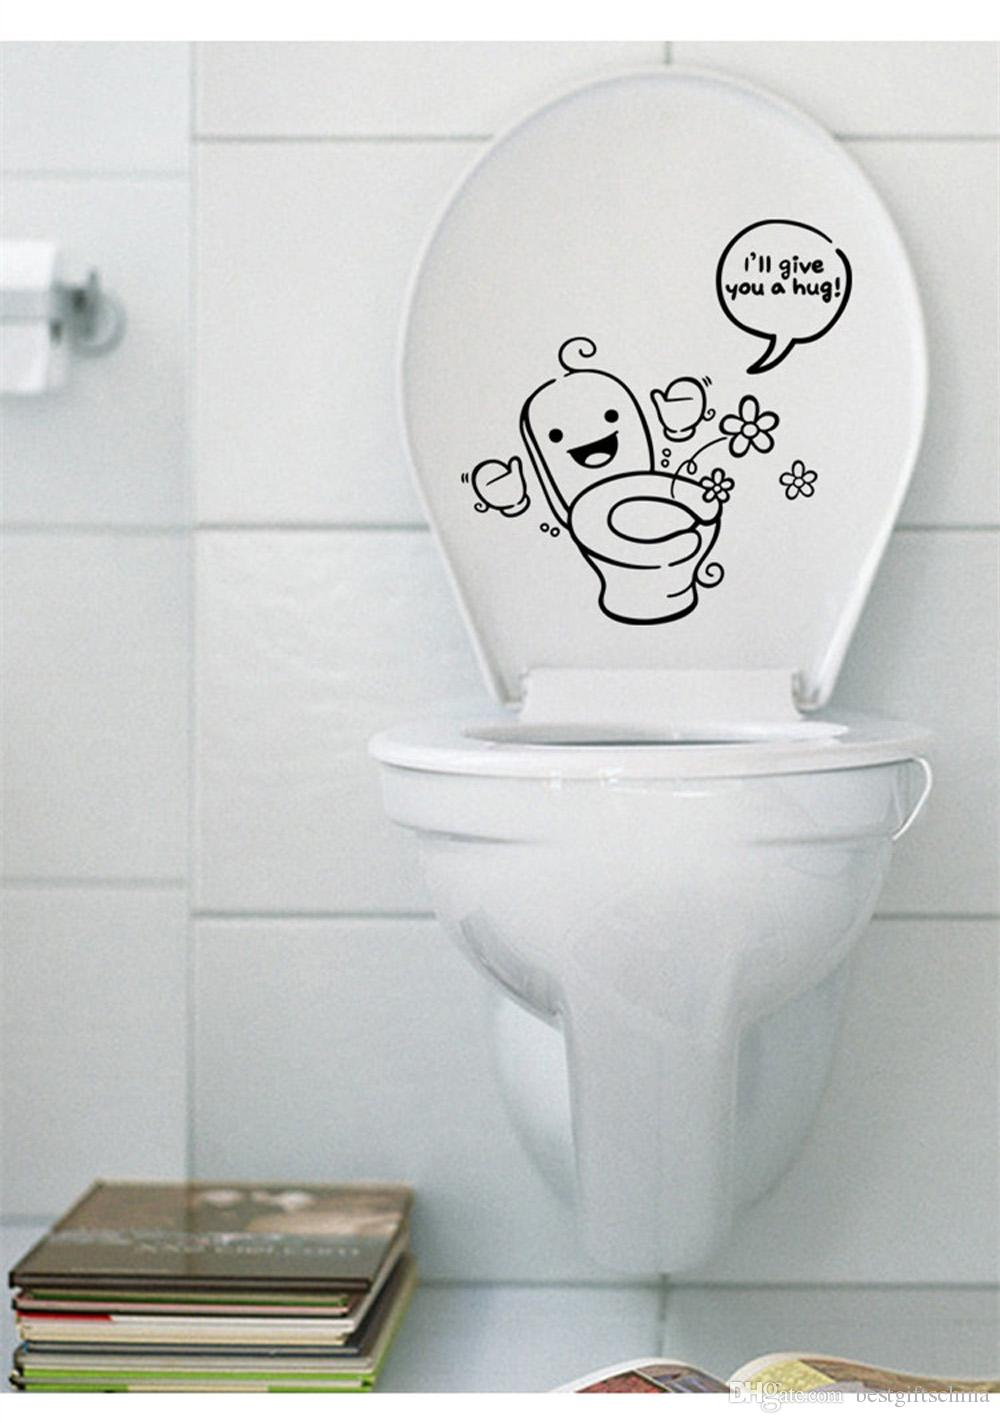 Closestool Lid Cartoon Decoration Waterproof Toilet Sticker Funny Bathroom  Wall Stricker Wall Stickers Home Decor Vinyl Pvc Decals For Wall Decals For  Walls ...